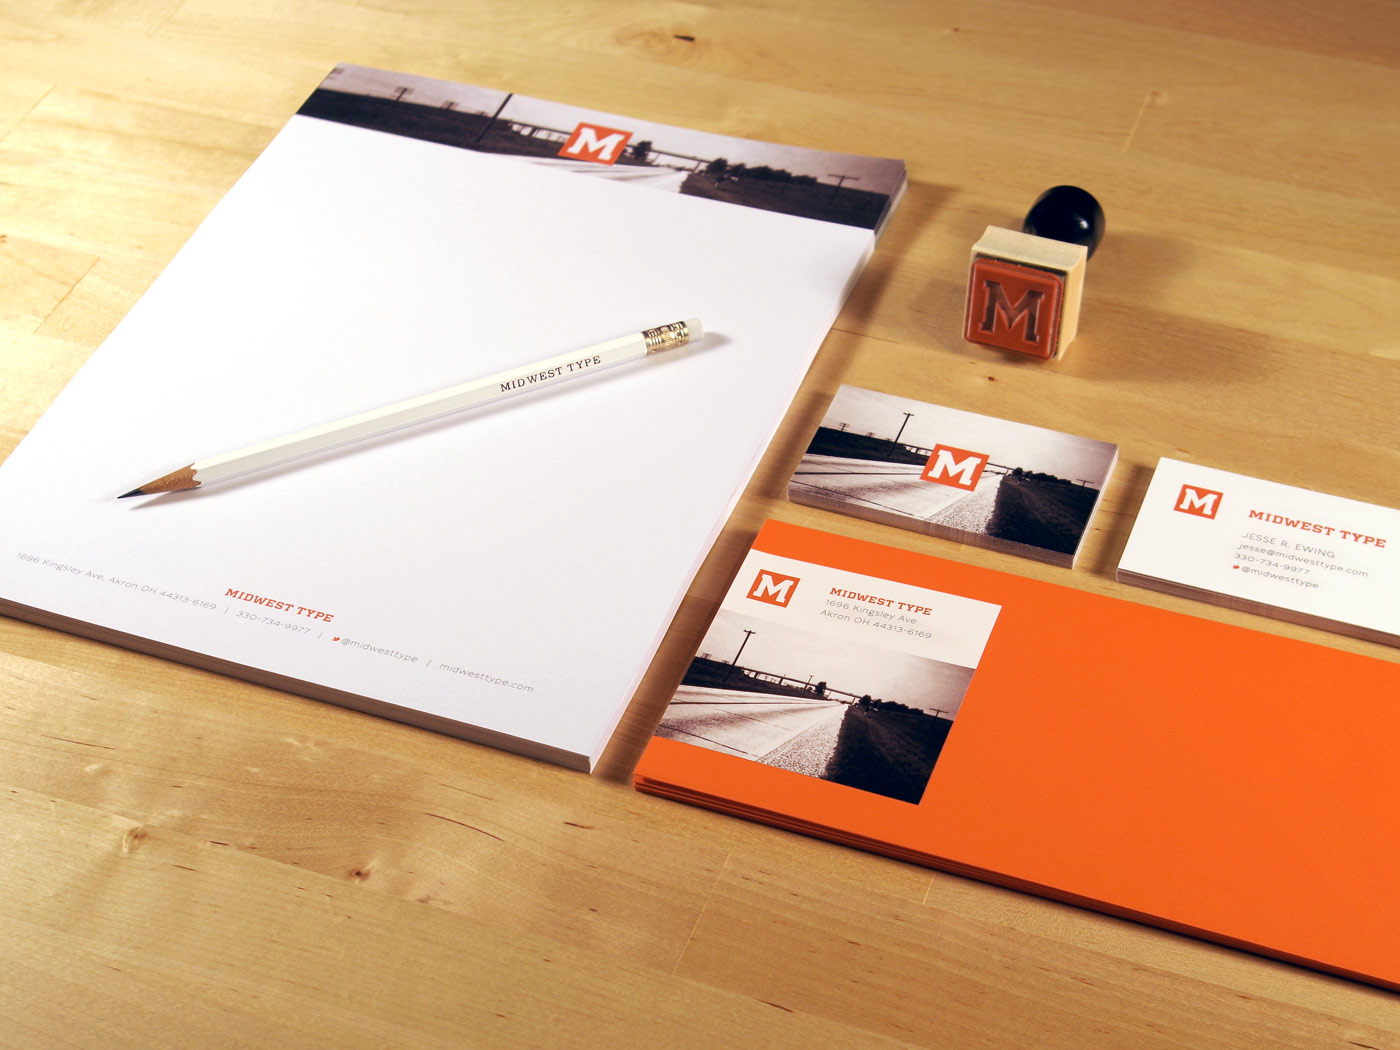 Midwest Type stationery